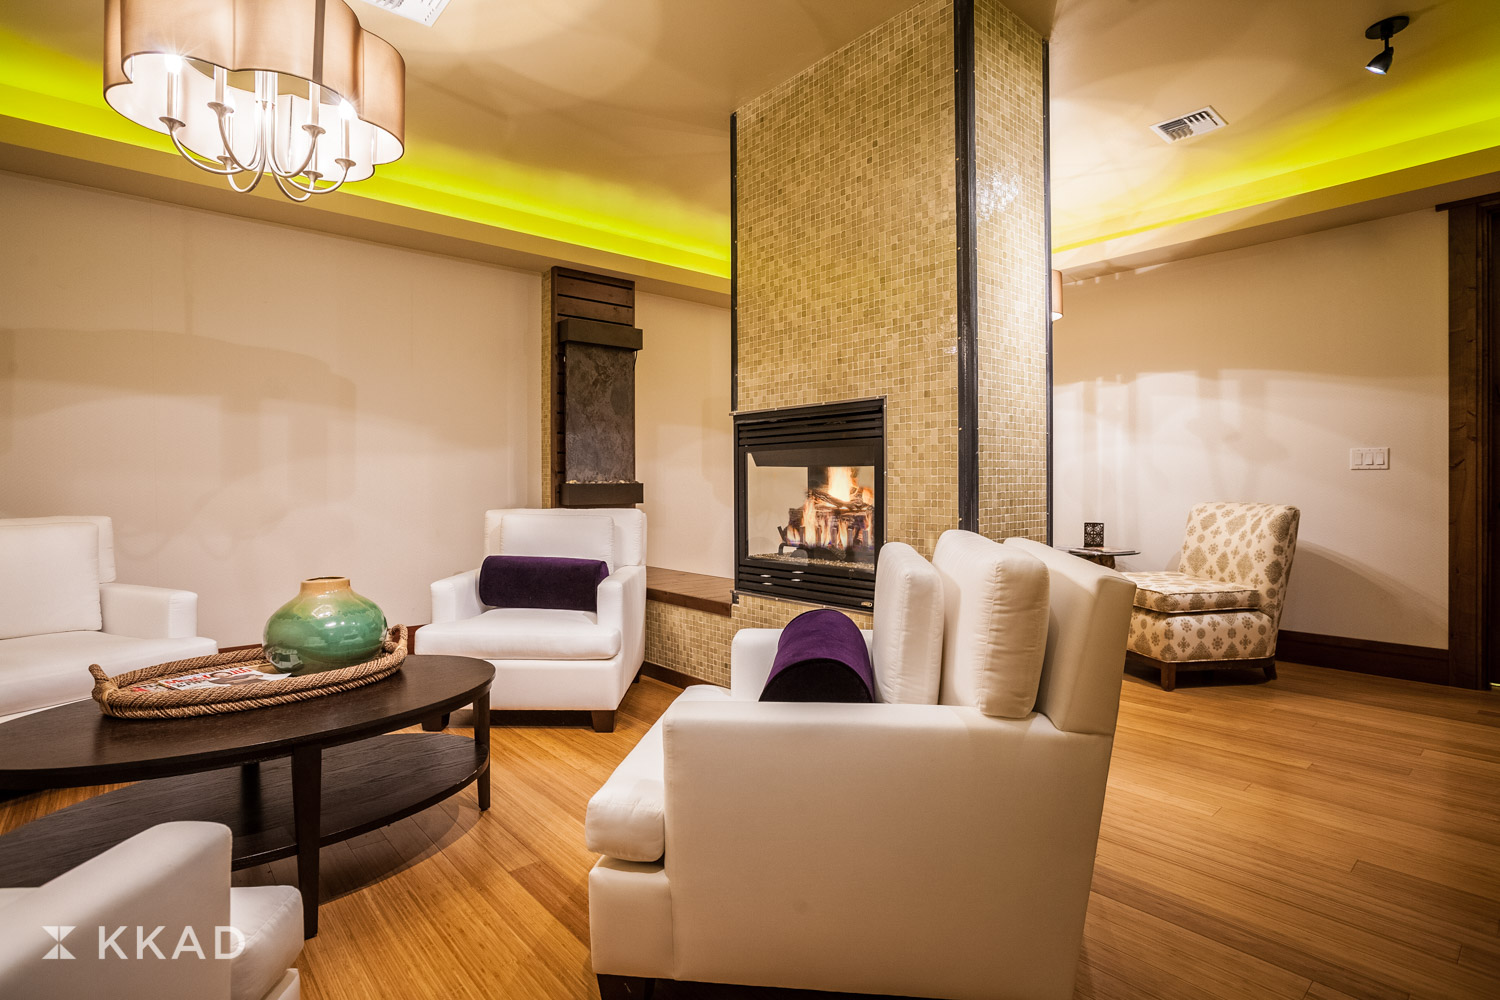 Brasada Spa Lounge